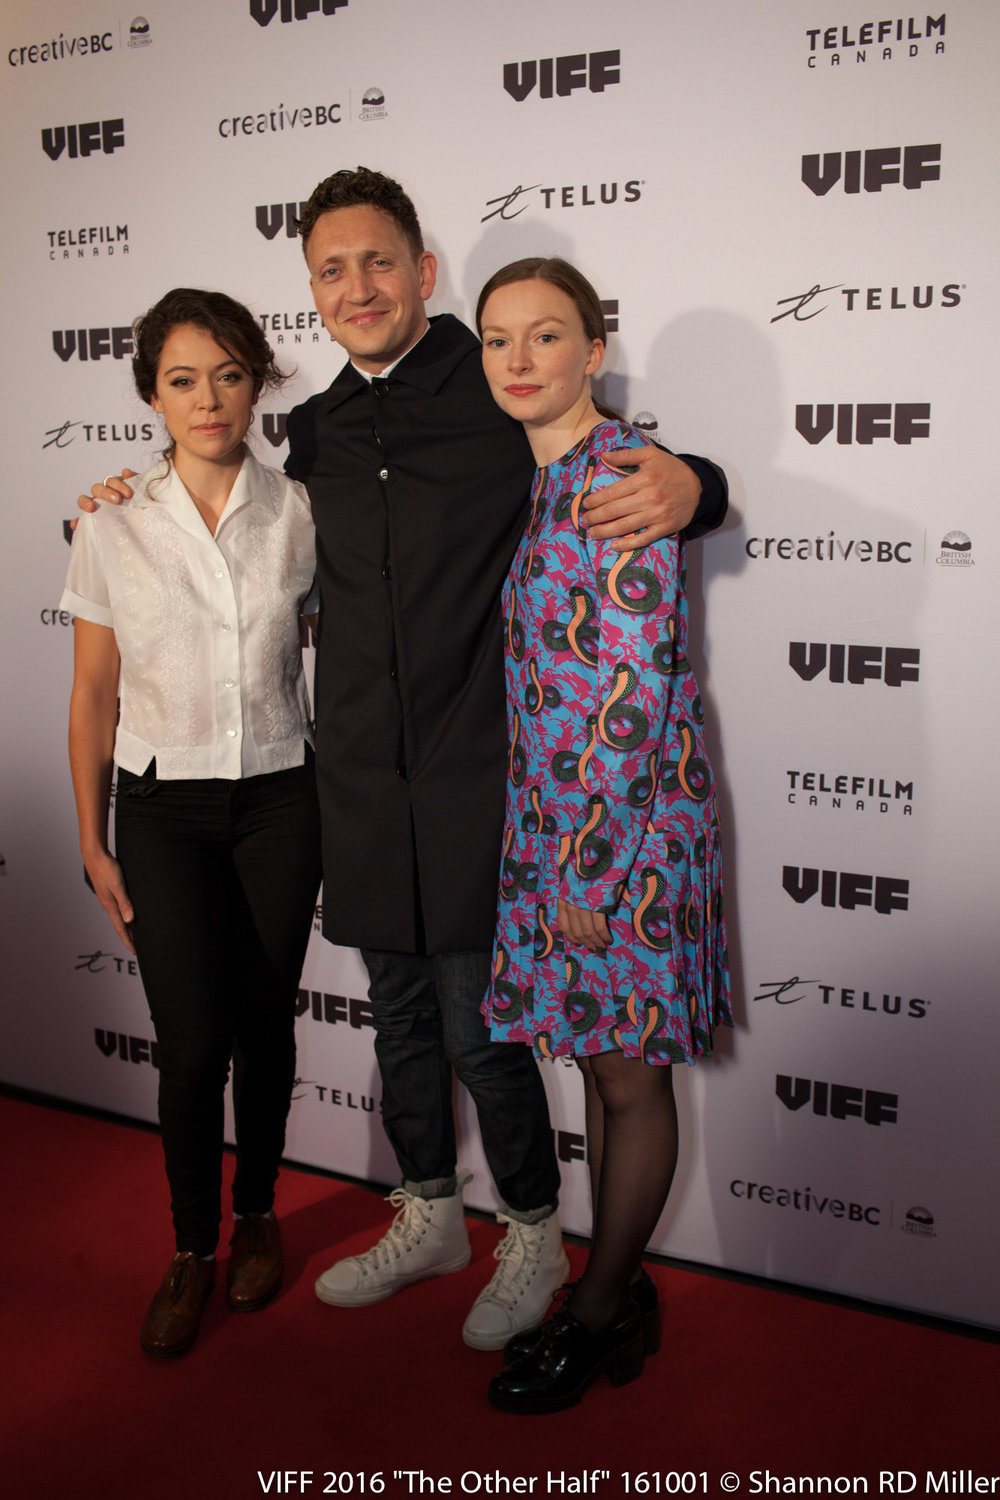 The Other Half Actors Tatianna Maslany and Deragh Campbell with Director Joey Klein.